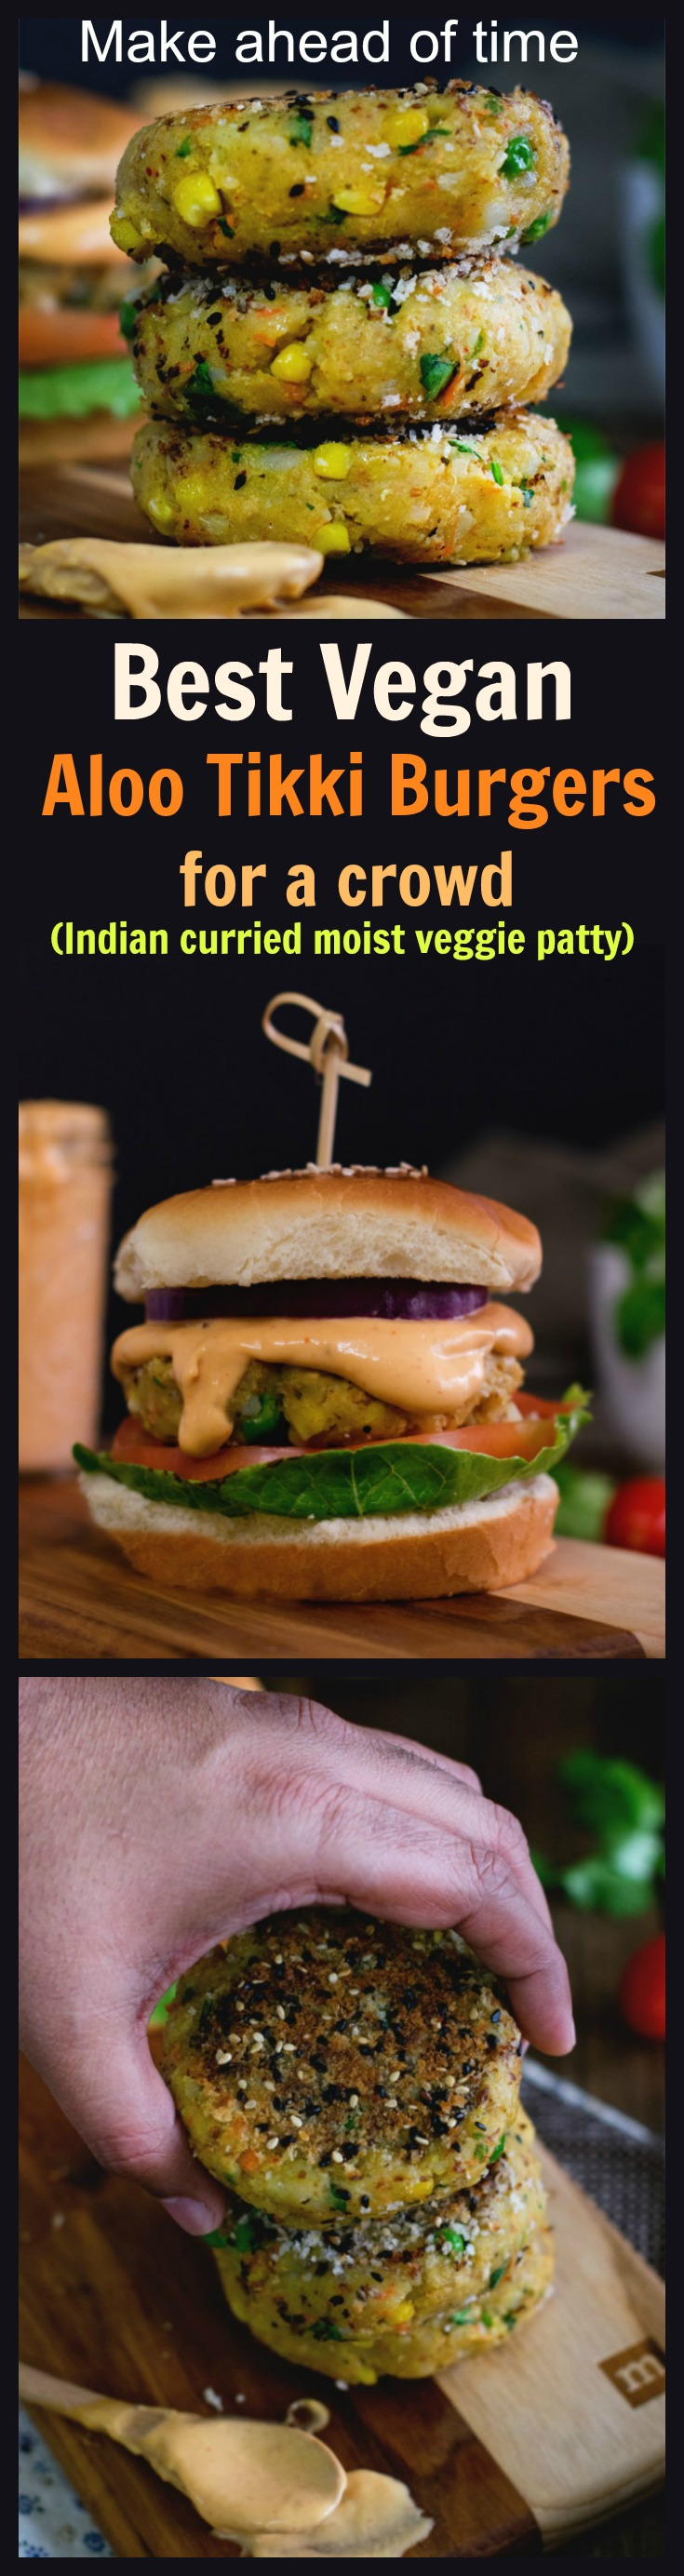 Easy Vegetable aloo tikki burger which is not deep fried. Crunchy vegetable and potato patties sandwiched between burger breads with amazing burger sauce. Better than McDonalds Mc Aloo tikki burger. Vegan potato patties for burger.